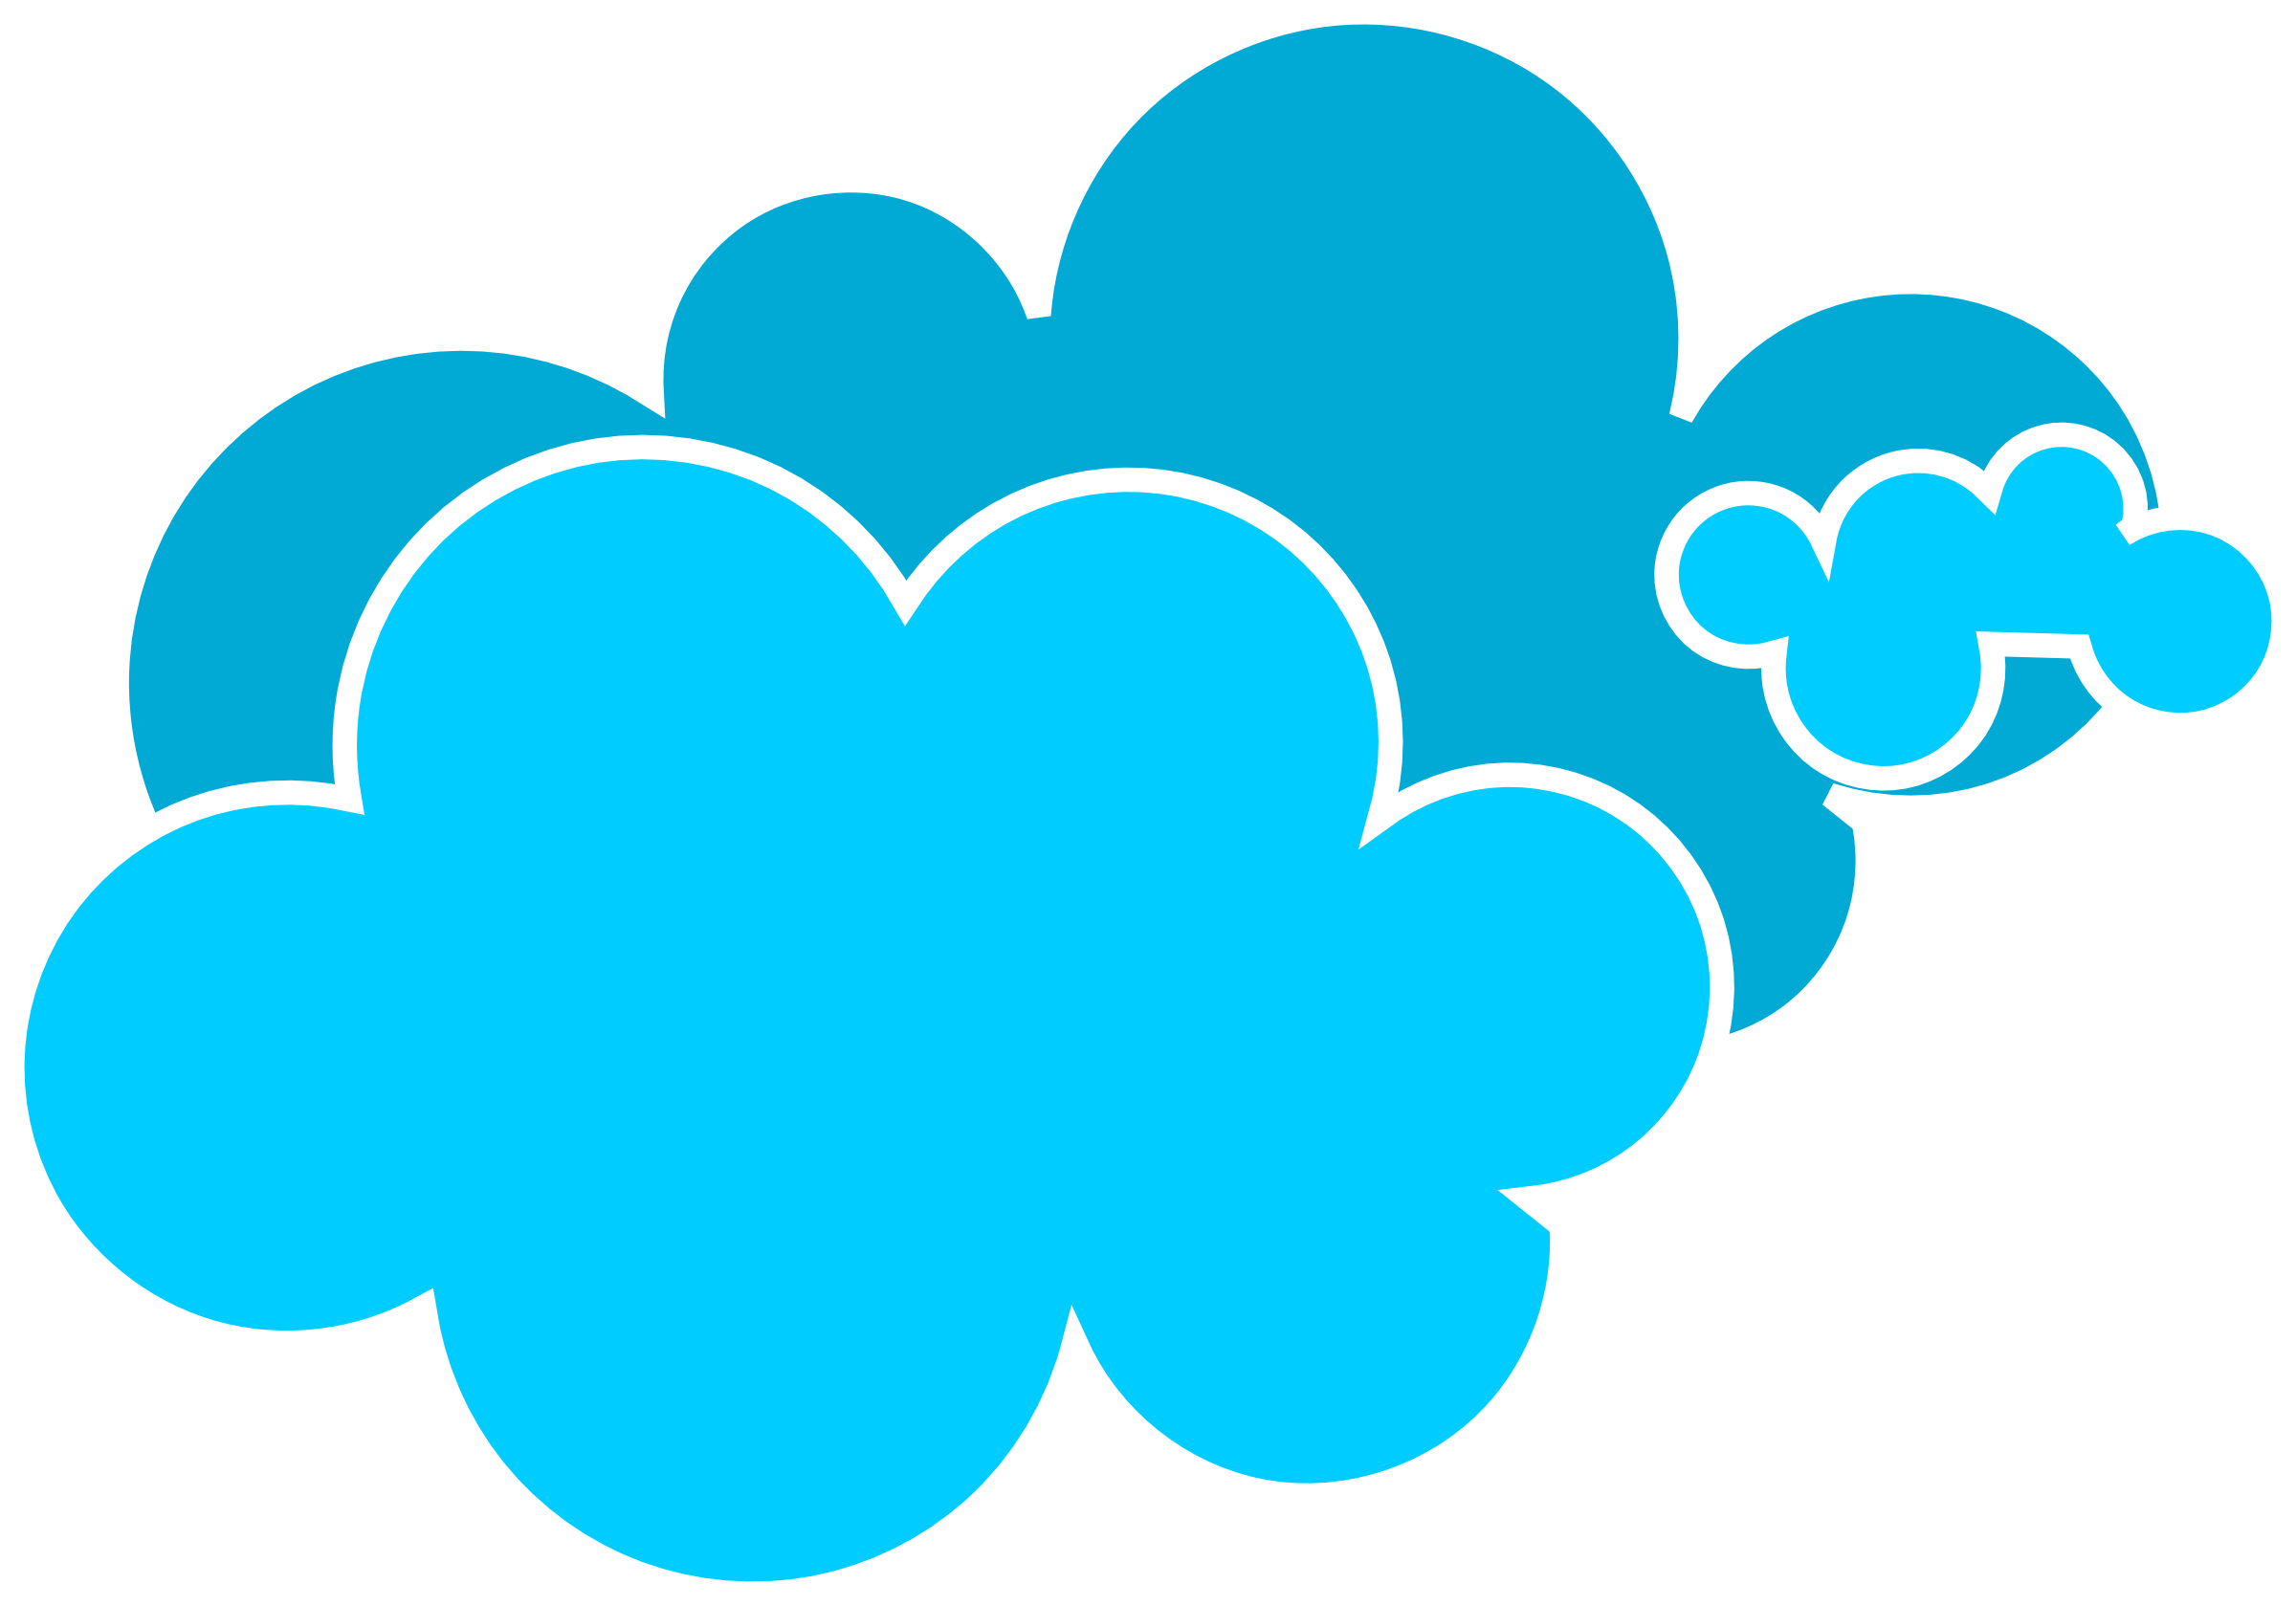 Pin by Cloud Clipart on Cloud Clipart in 2019.